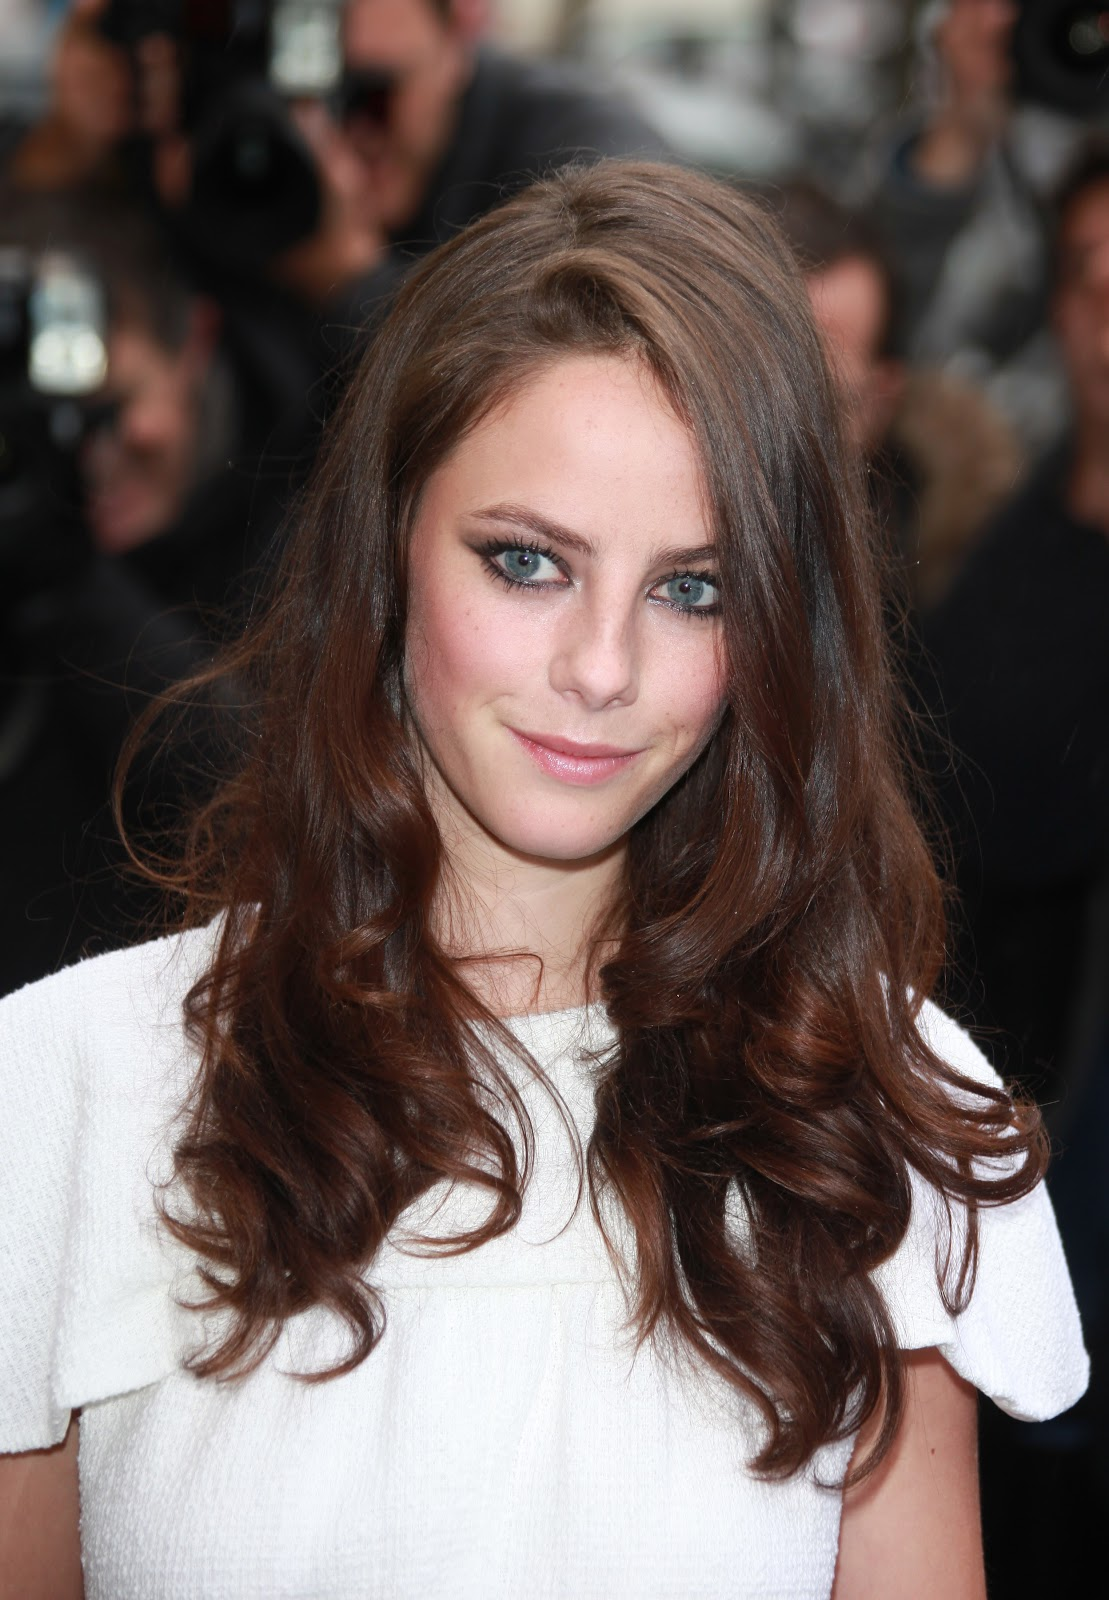 Maze Runner actress Kaya Scodelario Full HD Images & Wallpapers